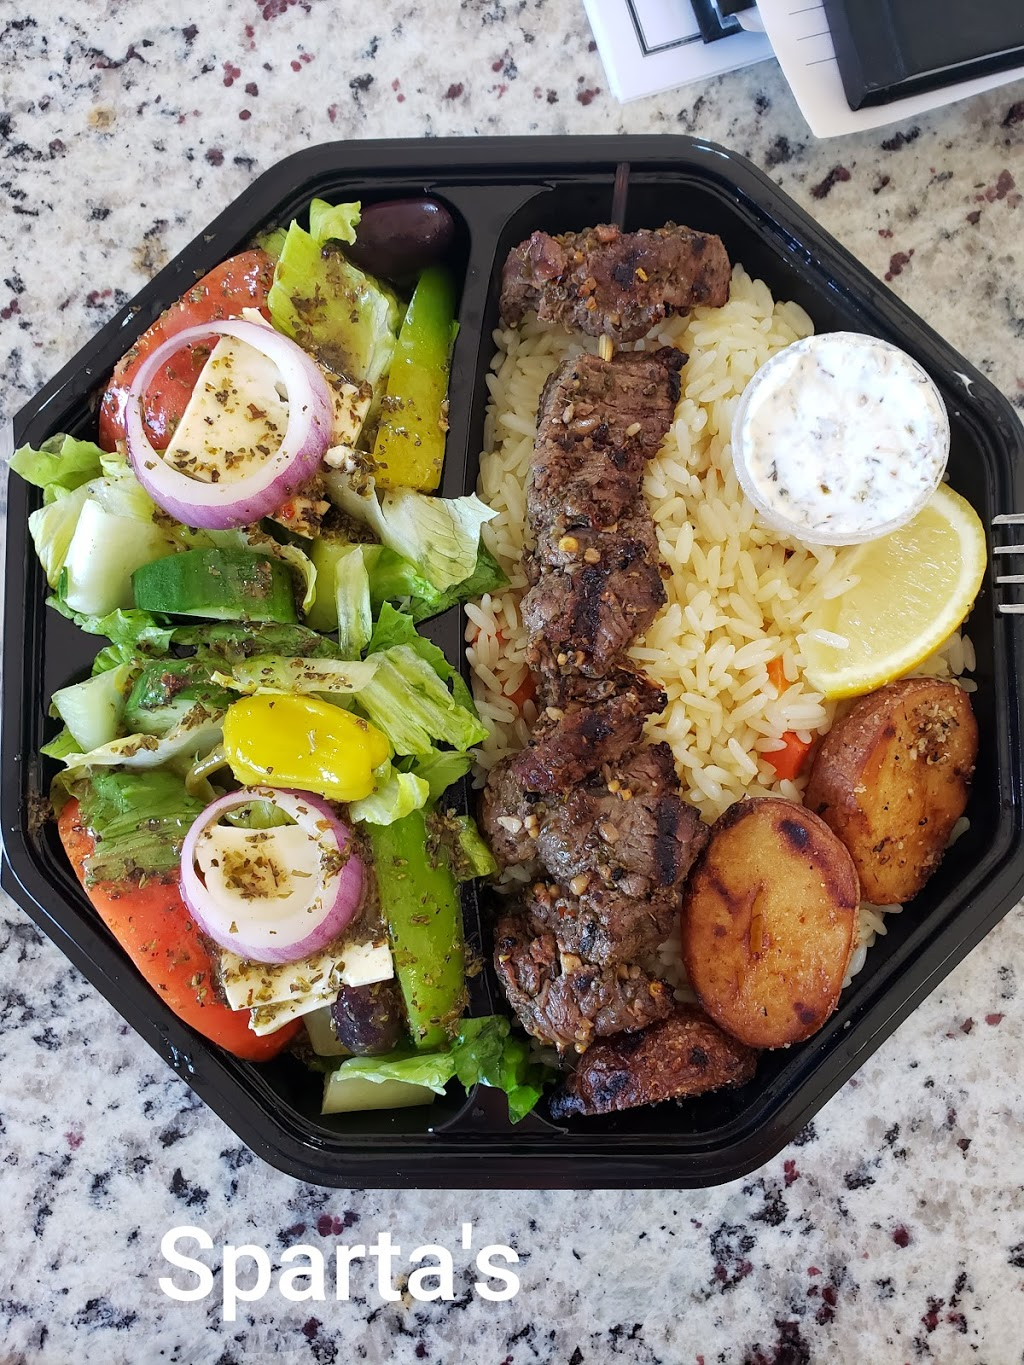 Spartas   restaurant   951 Notre Dame St, Embrun, ON K0A 1W0, Canada   6134432000 OR +1 613-443-2000